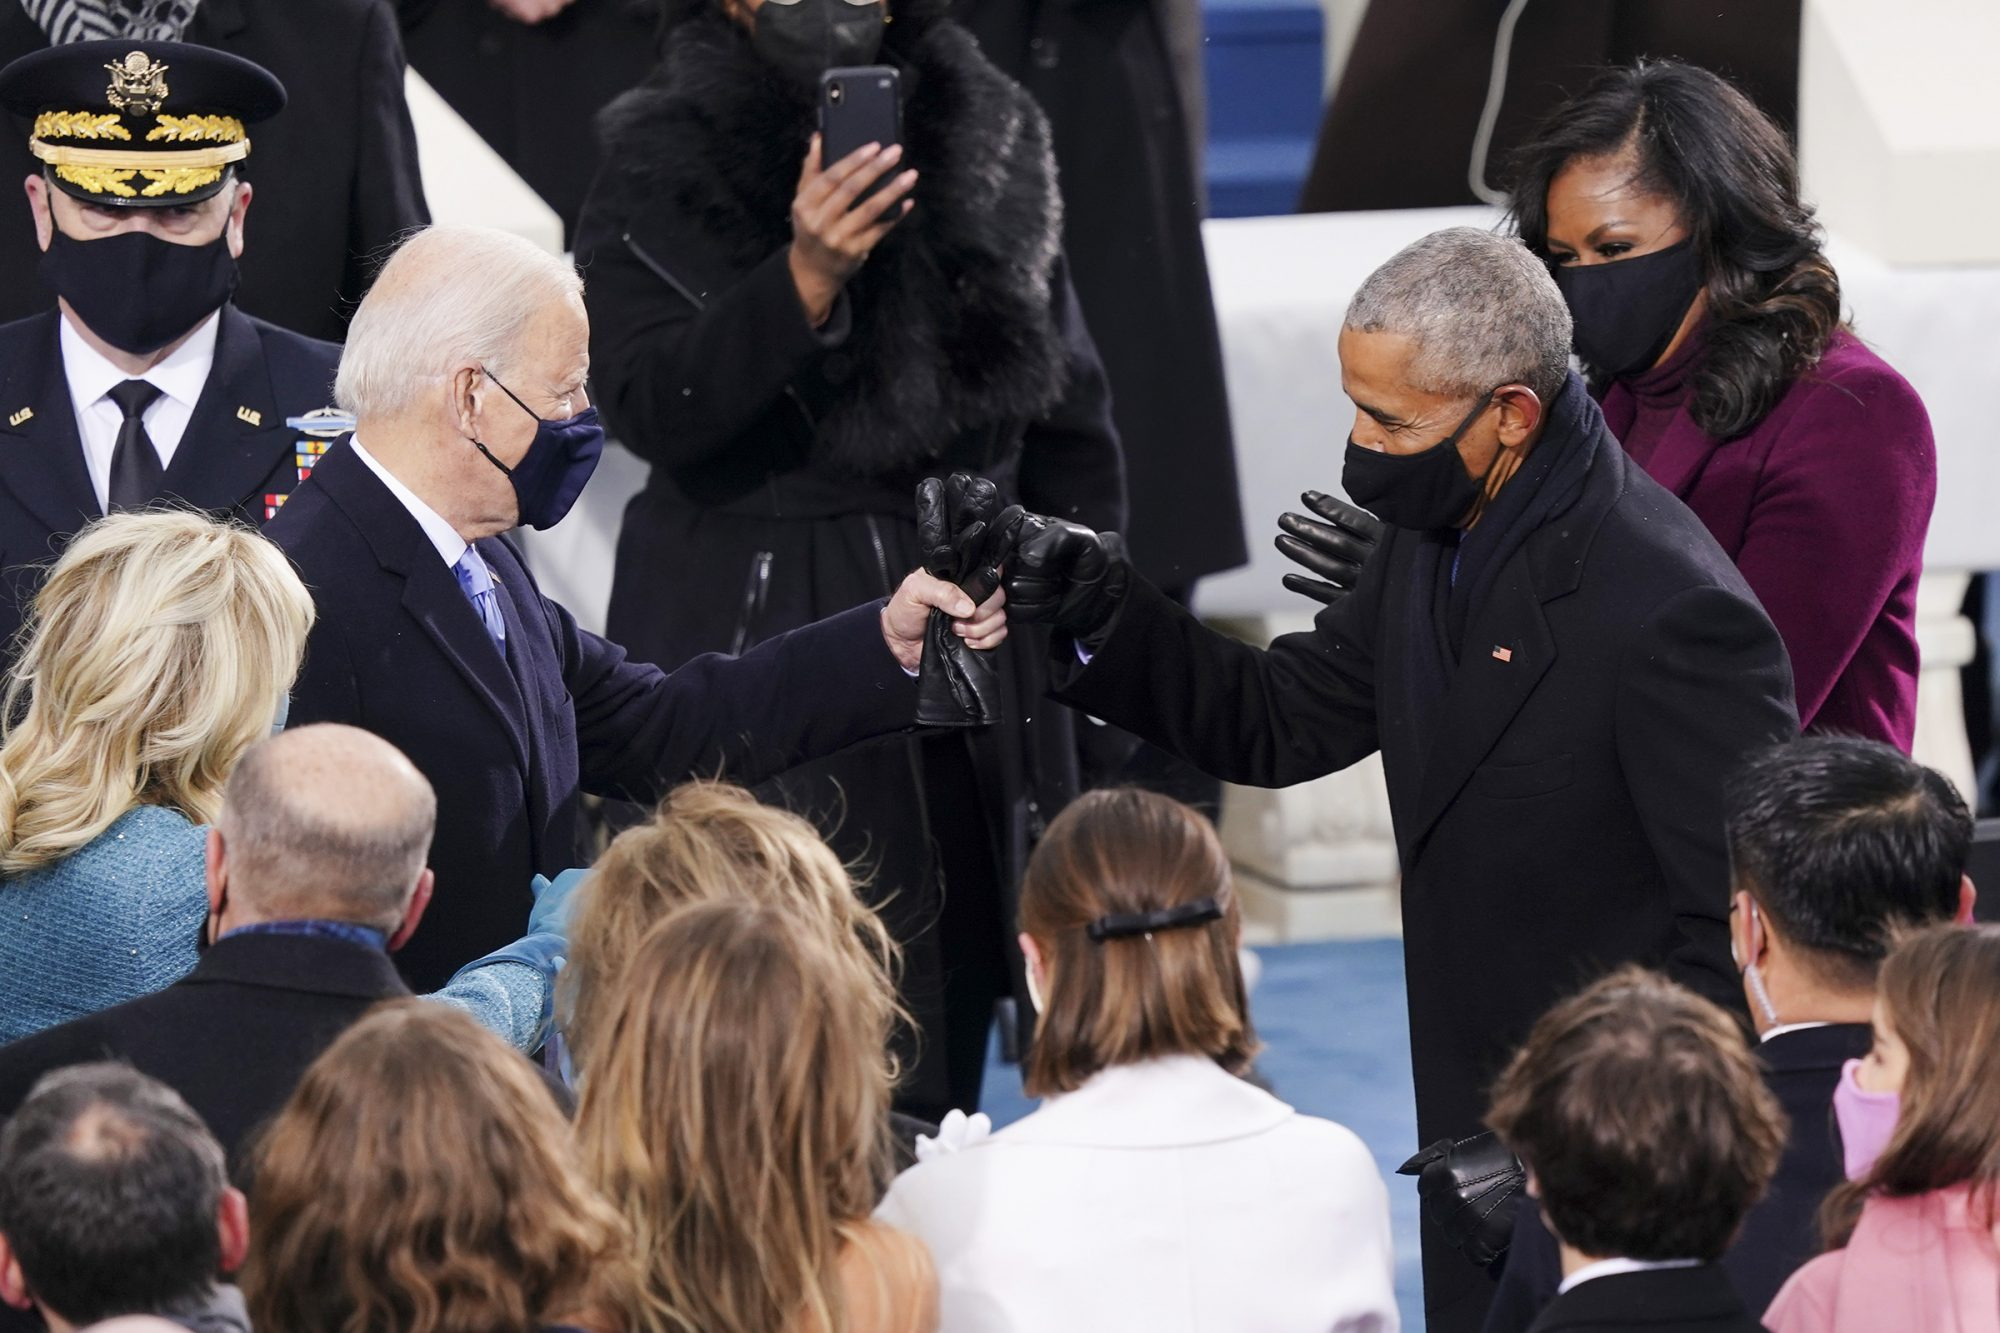 U.S. President-elect Joe Biden, left, greets former U.S. President Barack Obama, right, with a fist bump during the 59th presidential inauguration in Washington, D.C., U.S., on Wednesday, Jan. 20